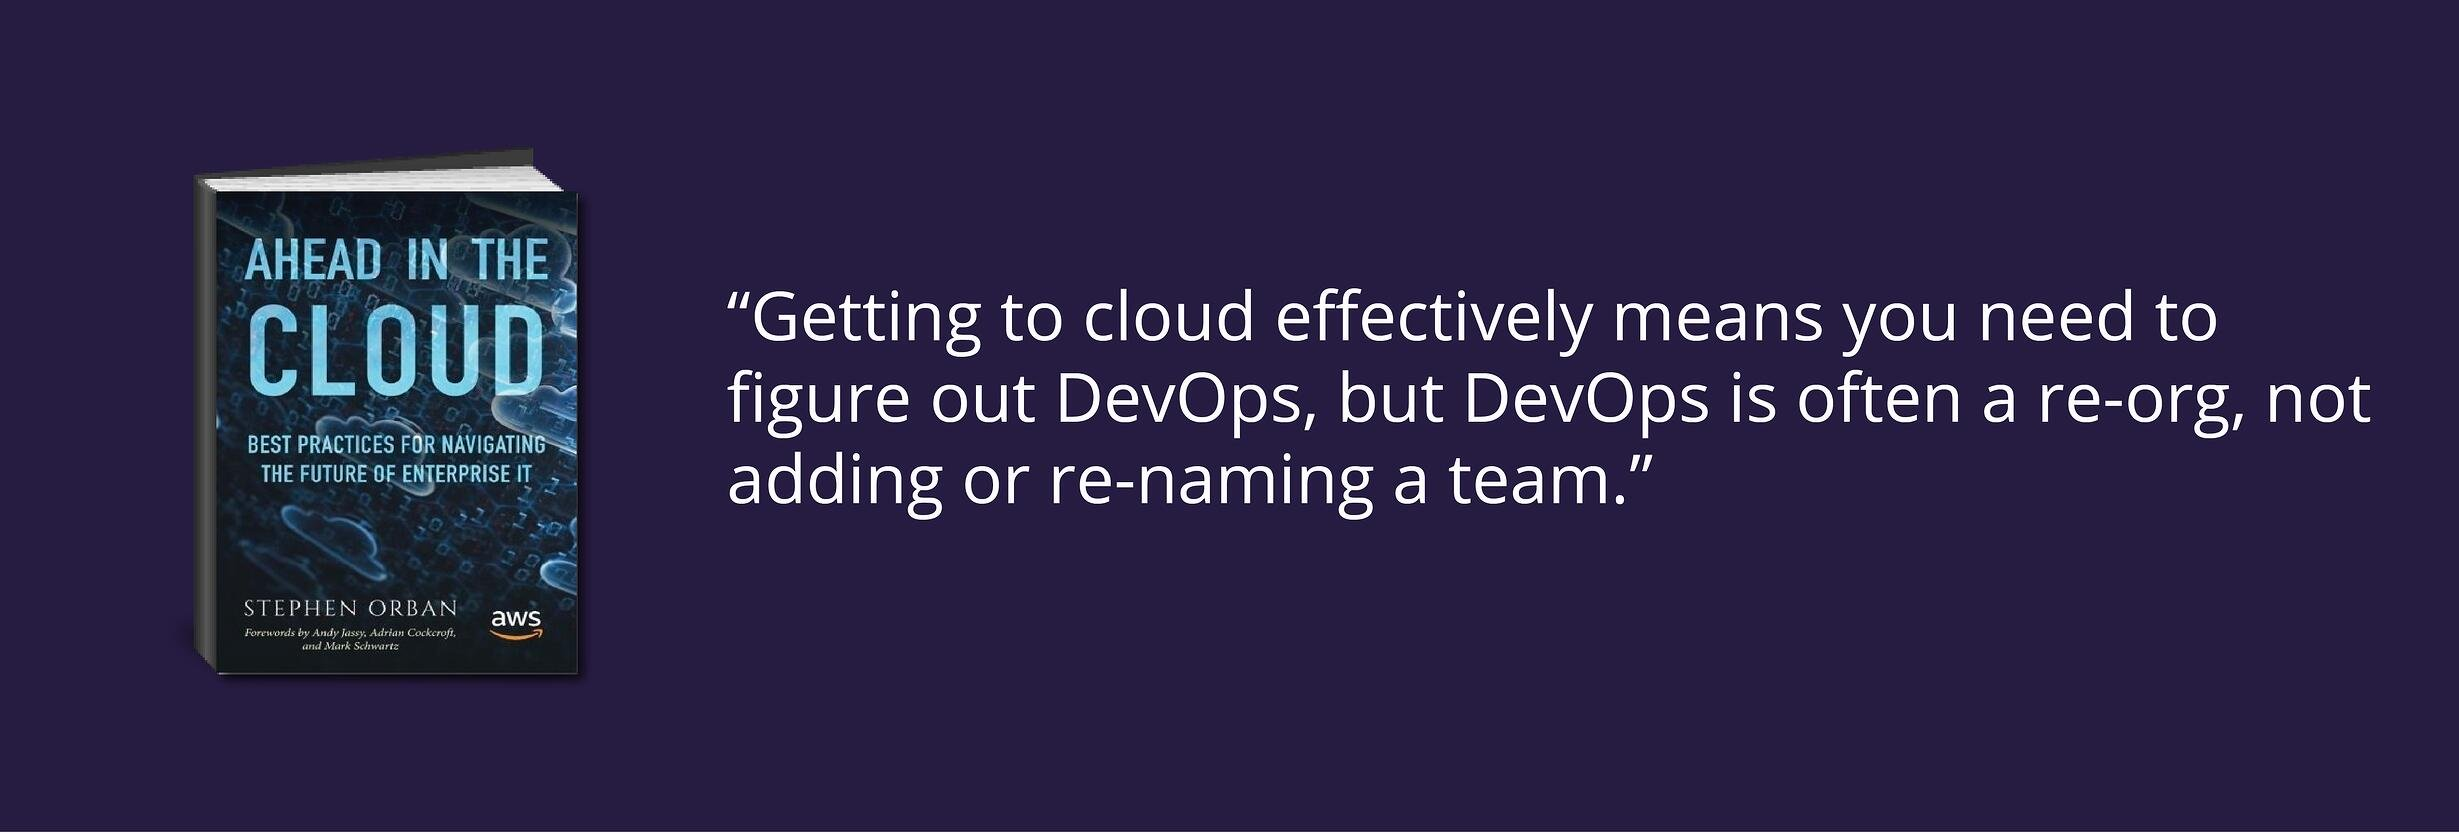 Ahead In The Cloud: Why DevOps Matters